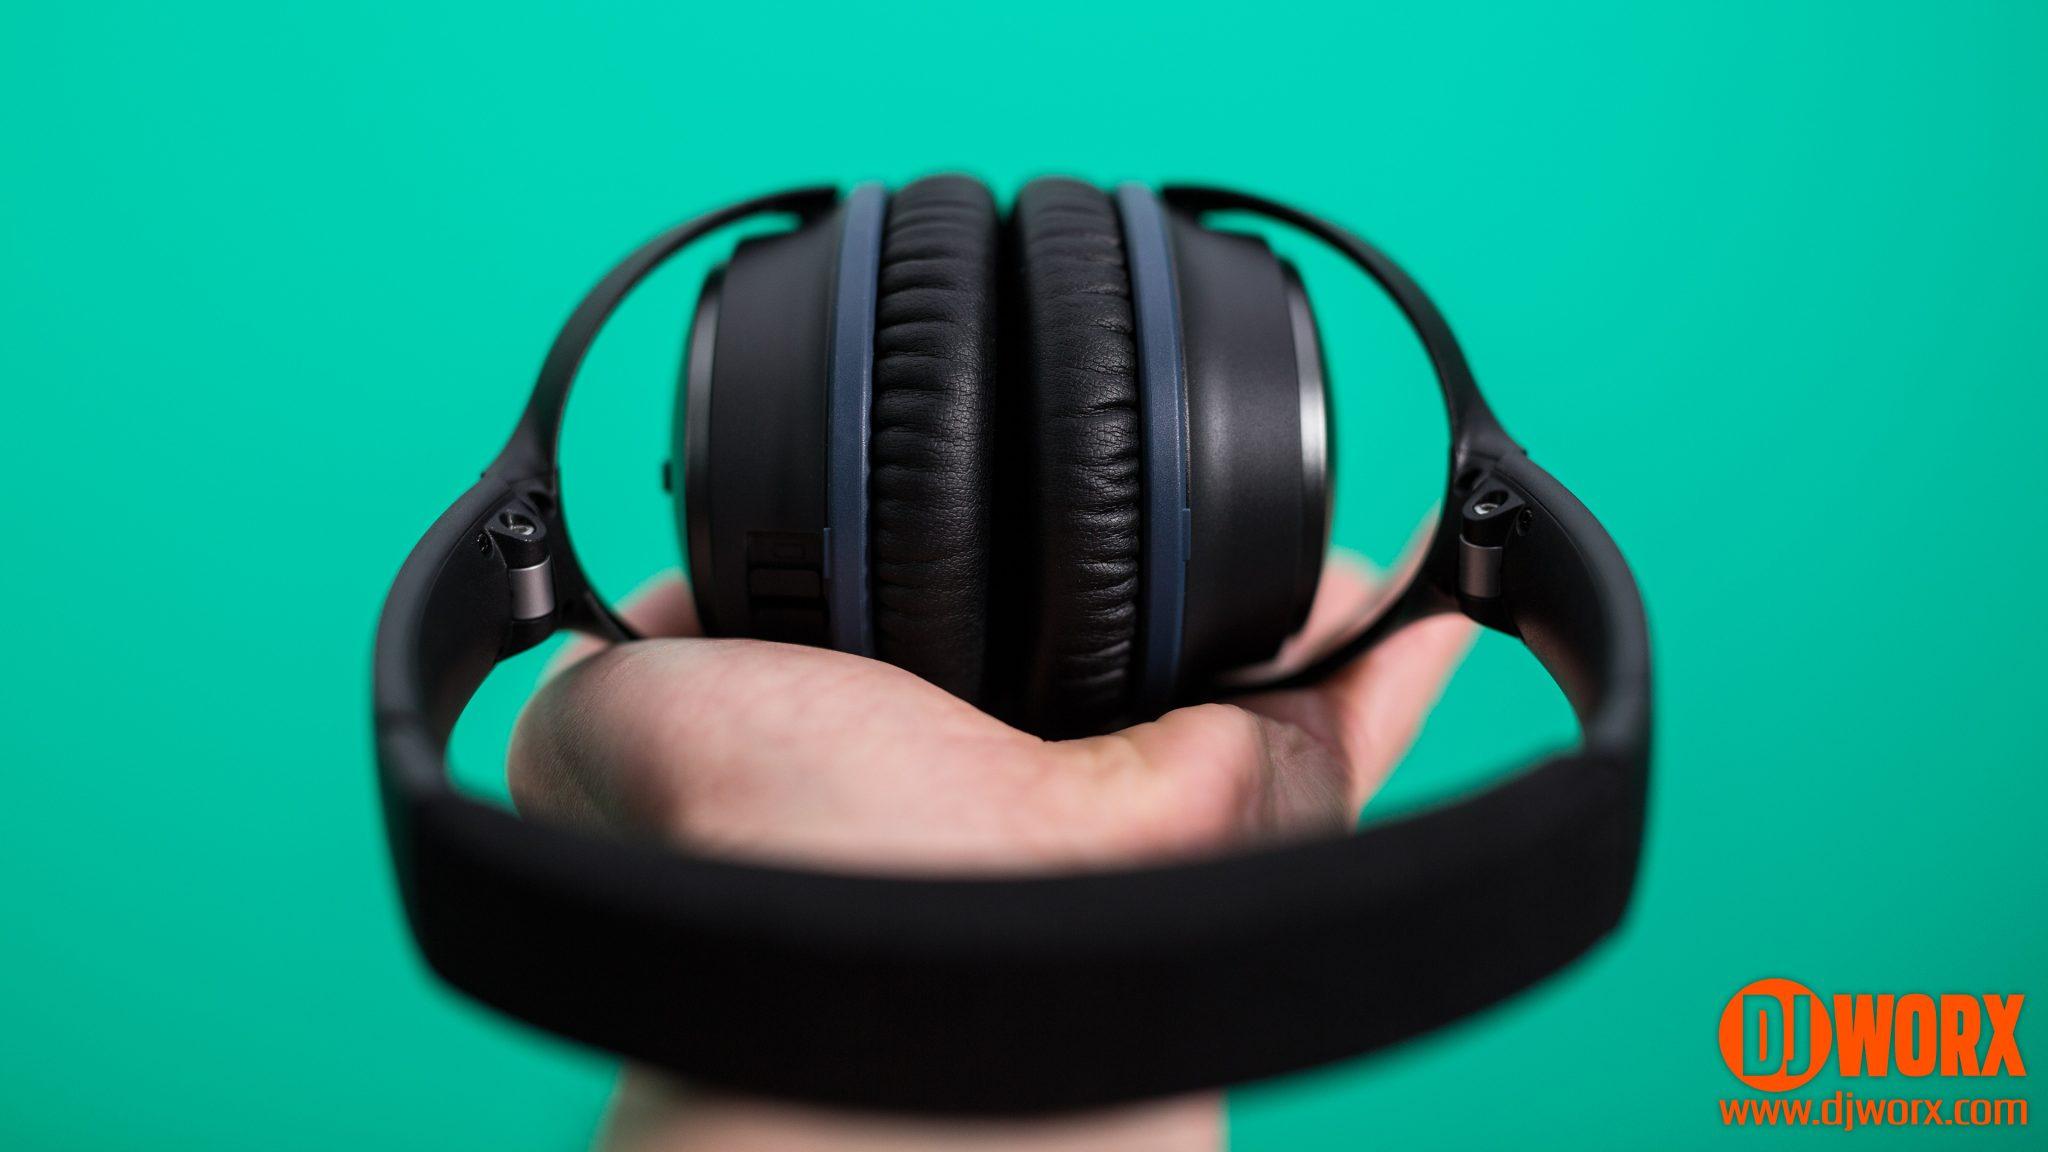 REVIEW: Bose QC20 and QC25 noise-cancelling headphones 7